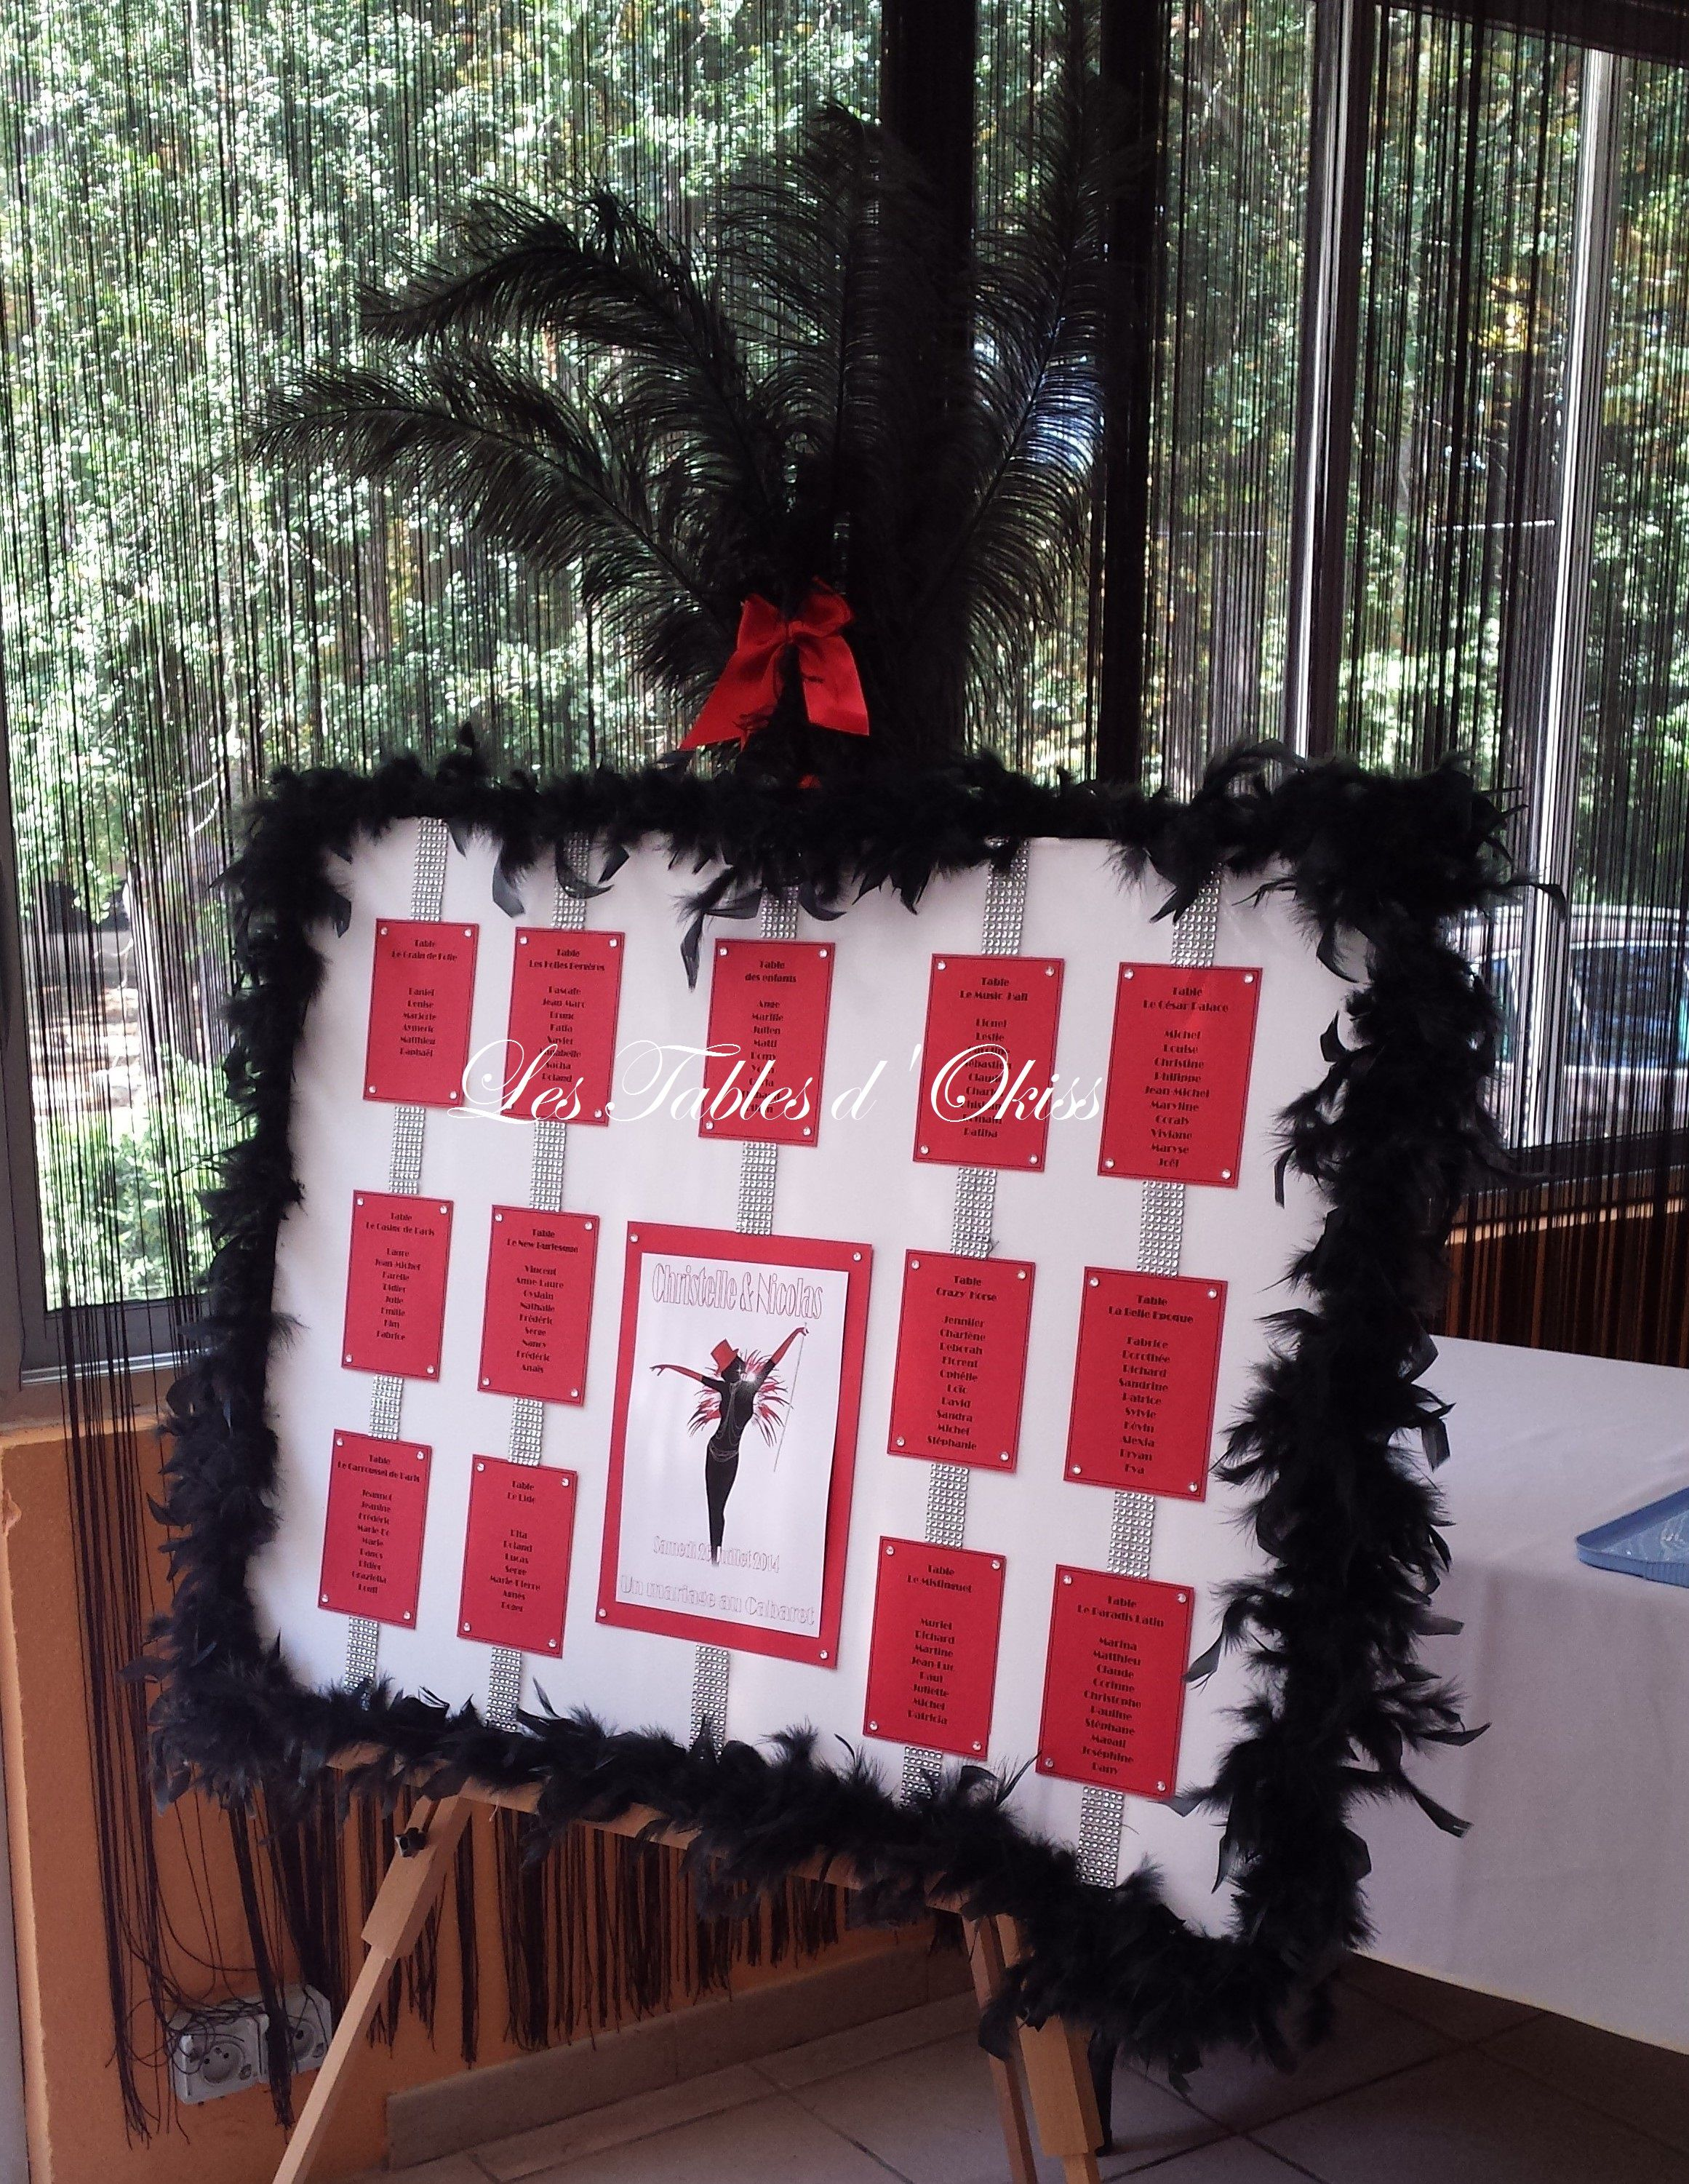 Moulin rouge party moulin rouge party pinterest - Plan De Table Cr Ation Les Tables D Okiss Mariage Cabaret Moulin Rouge